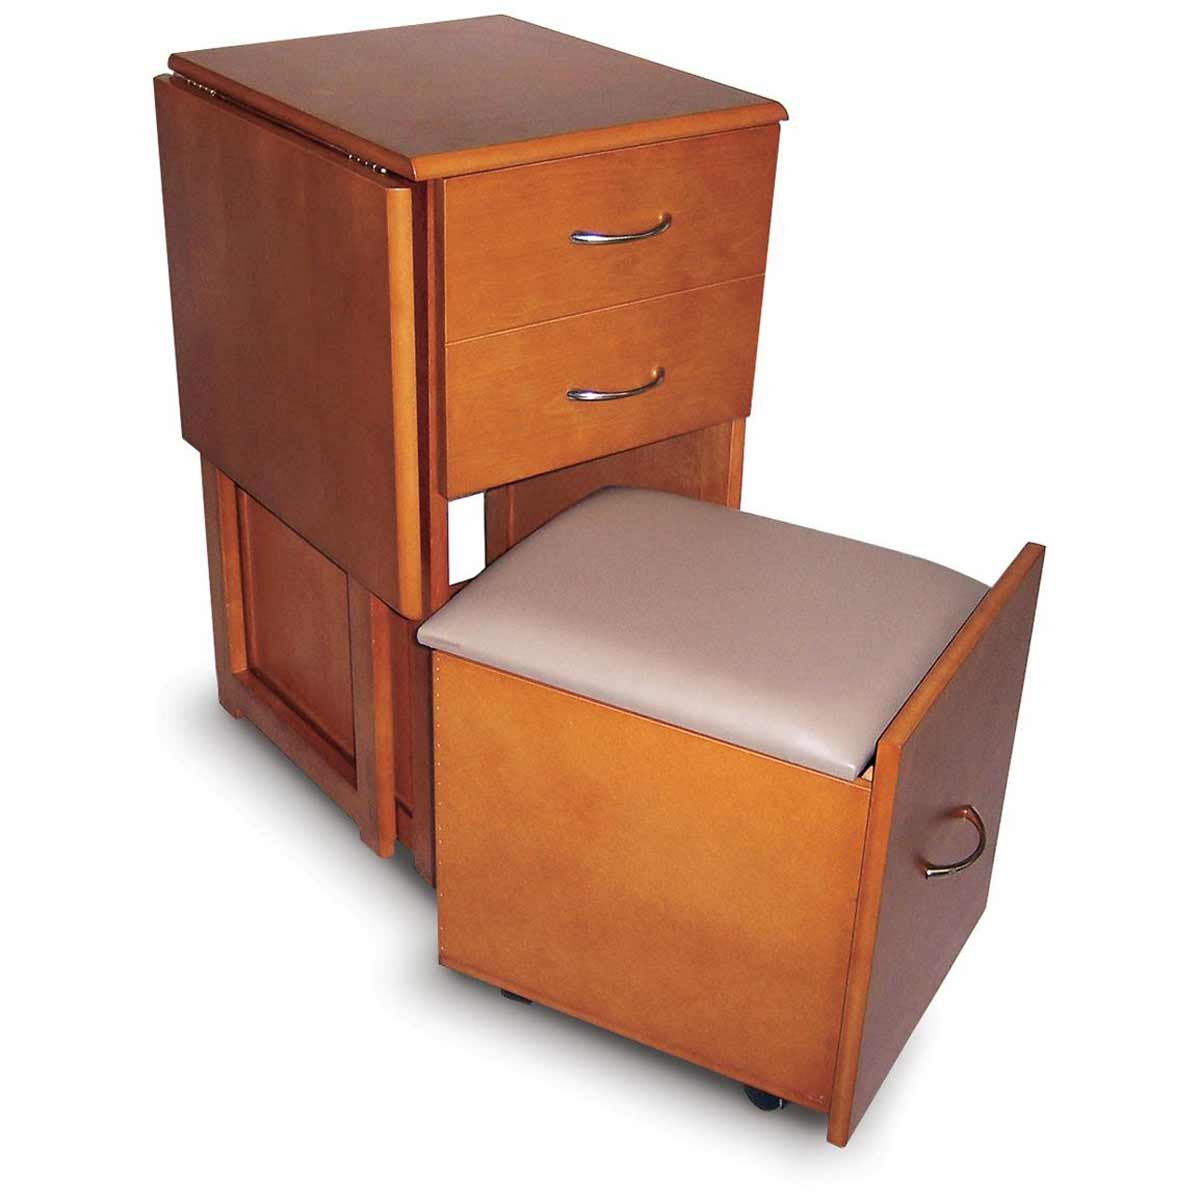 Space Saving Built In Office Furniture In Corners: Space Saver Desks Products Review